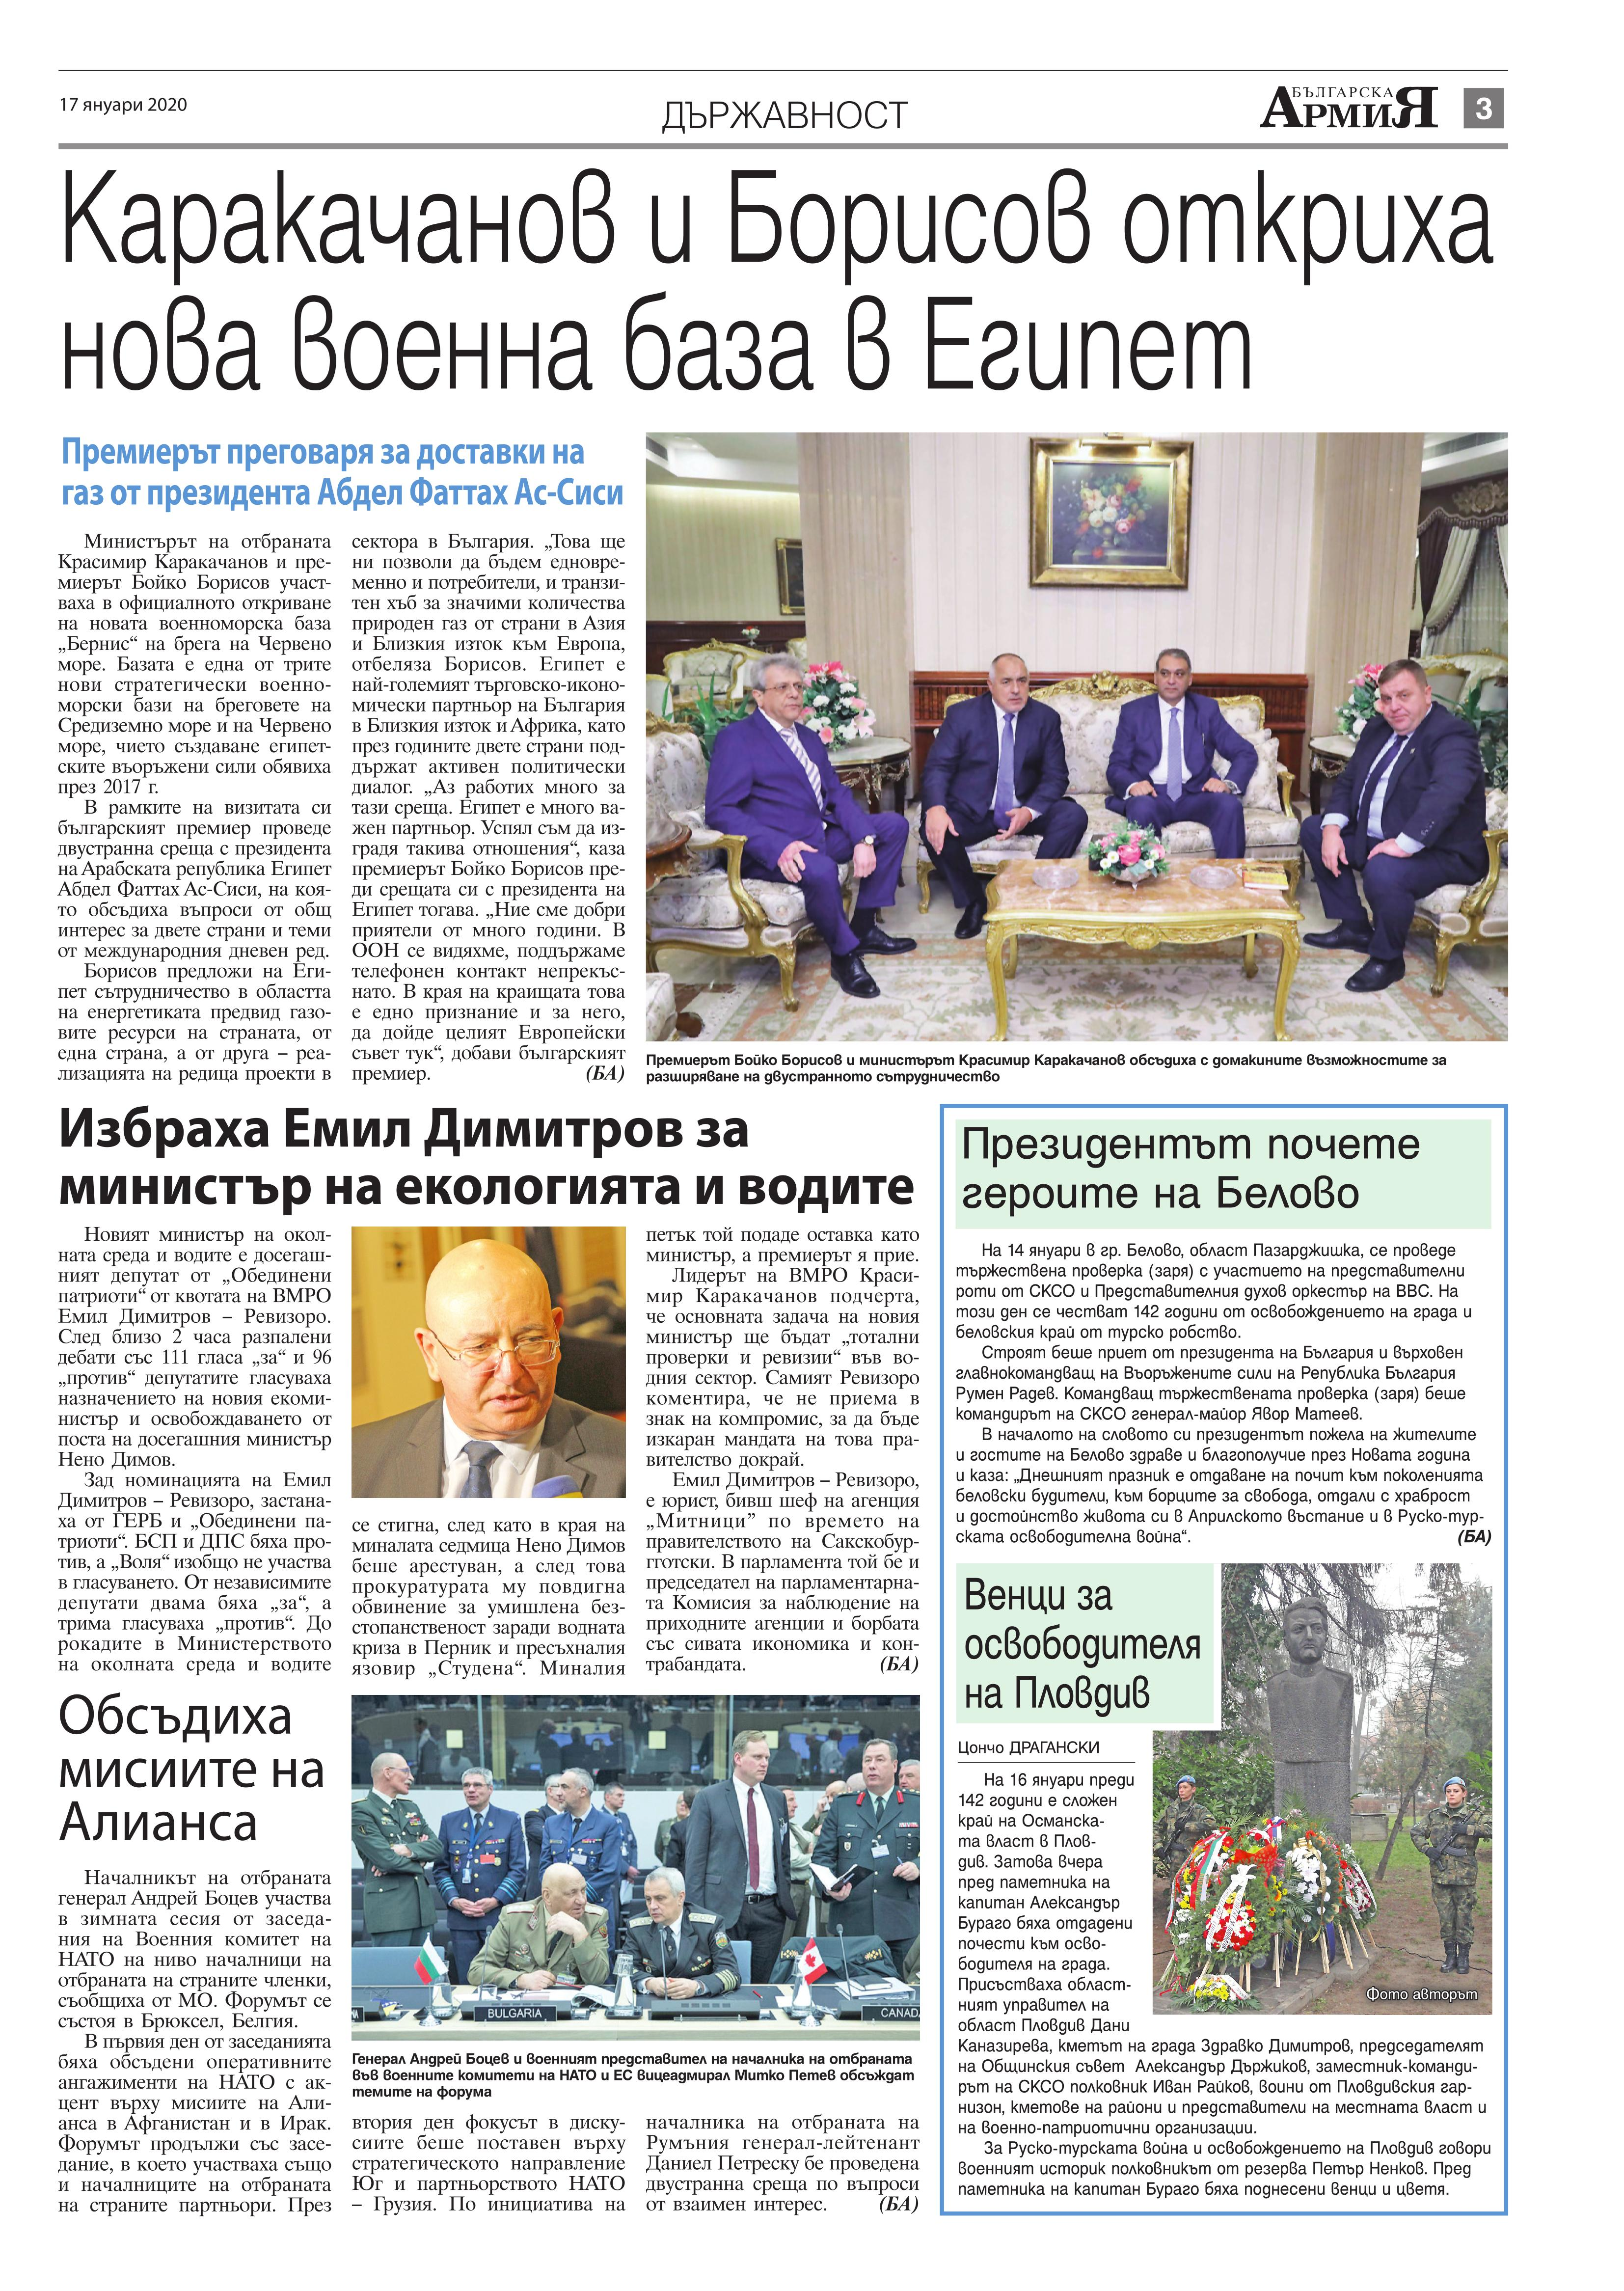 https://www.armymedia.bg/wp-content/uploads/2015/06/03.page1_-120.jpg